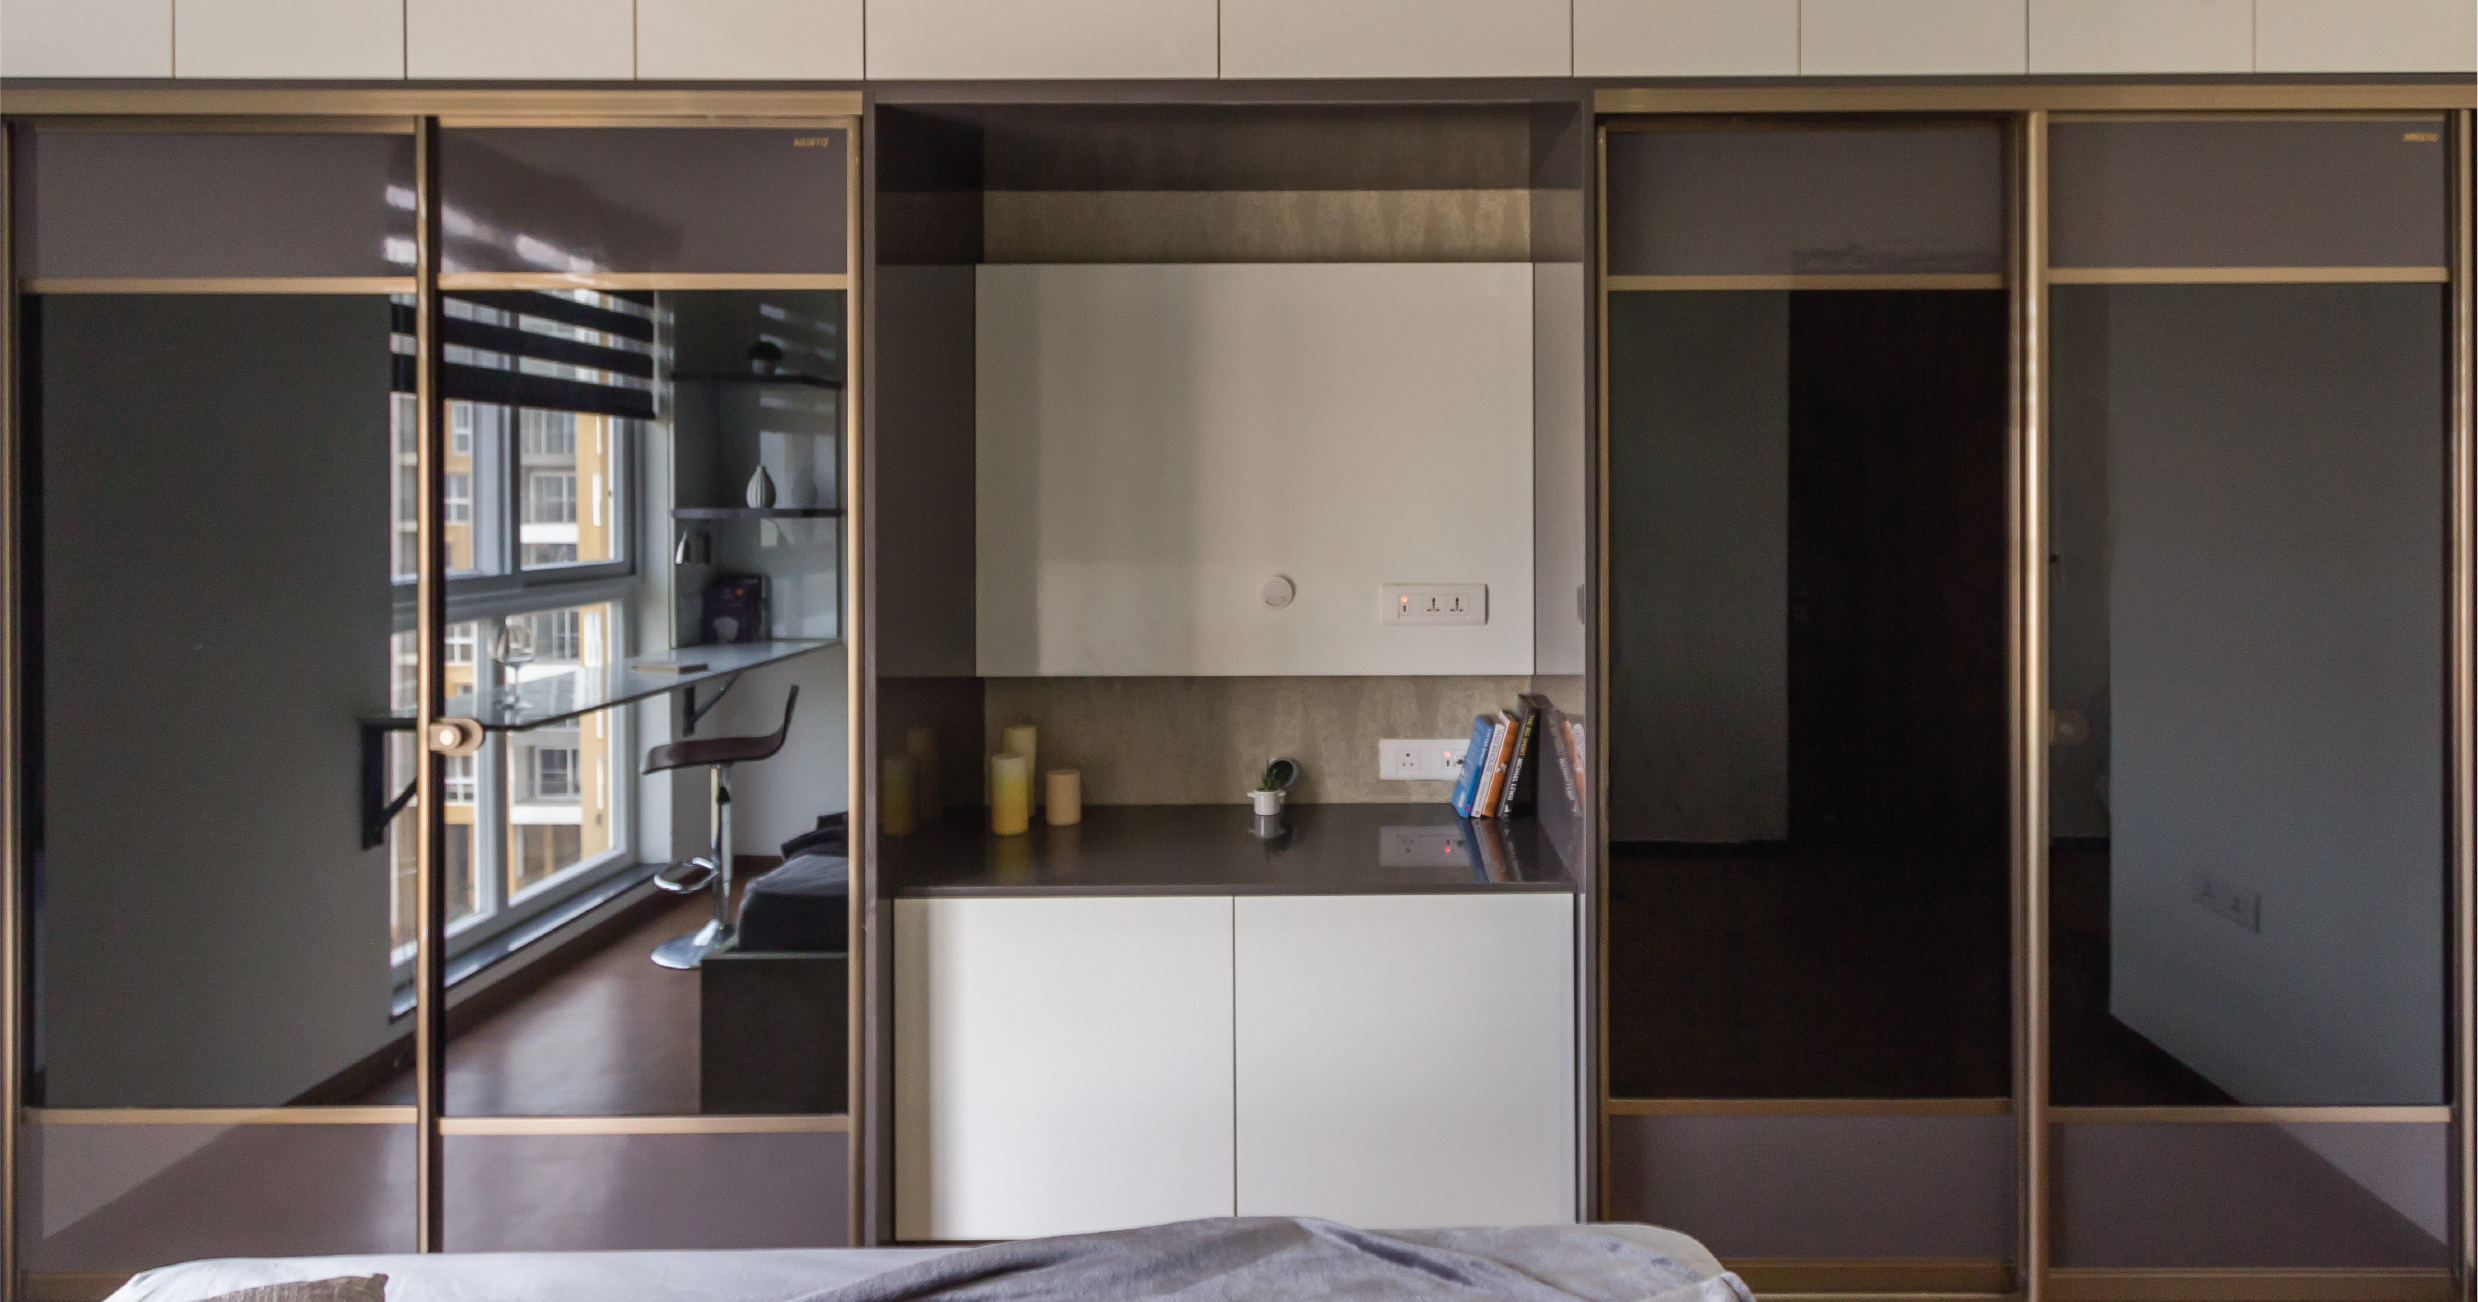 Swing or Slide Open Wardrobe: How to Find the Best Fit for Your Home?